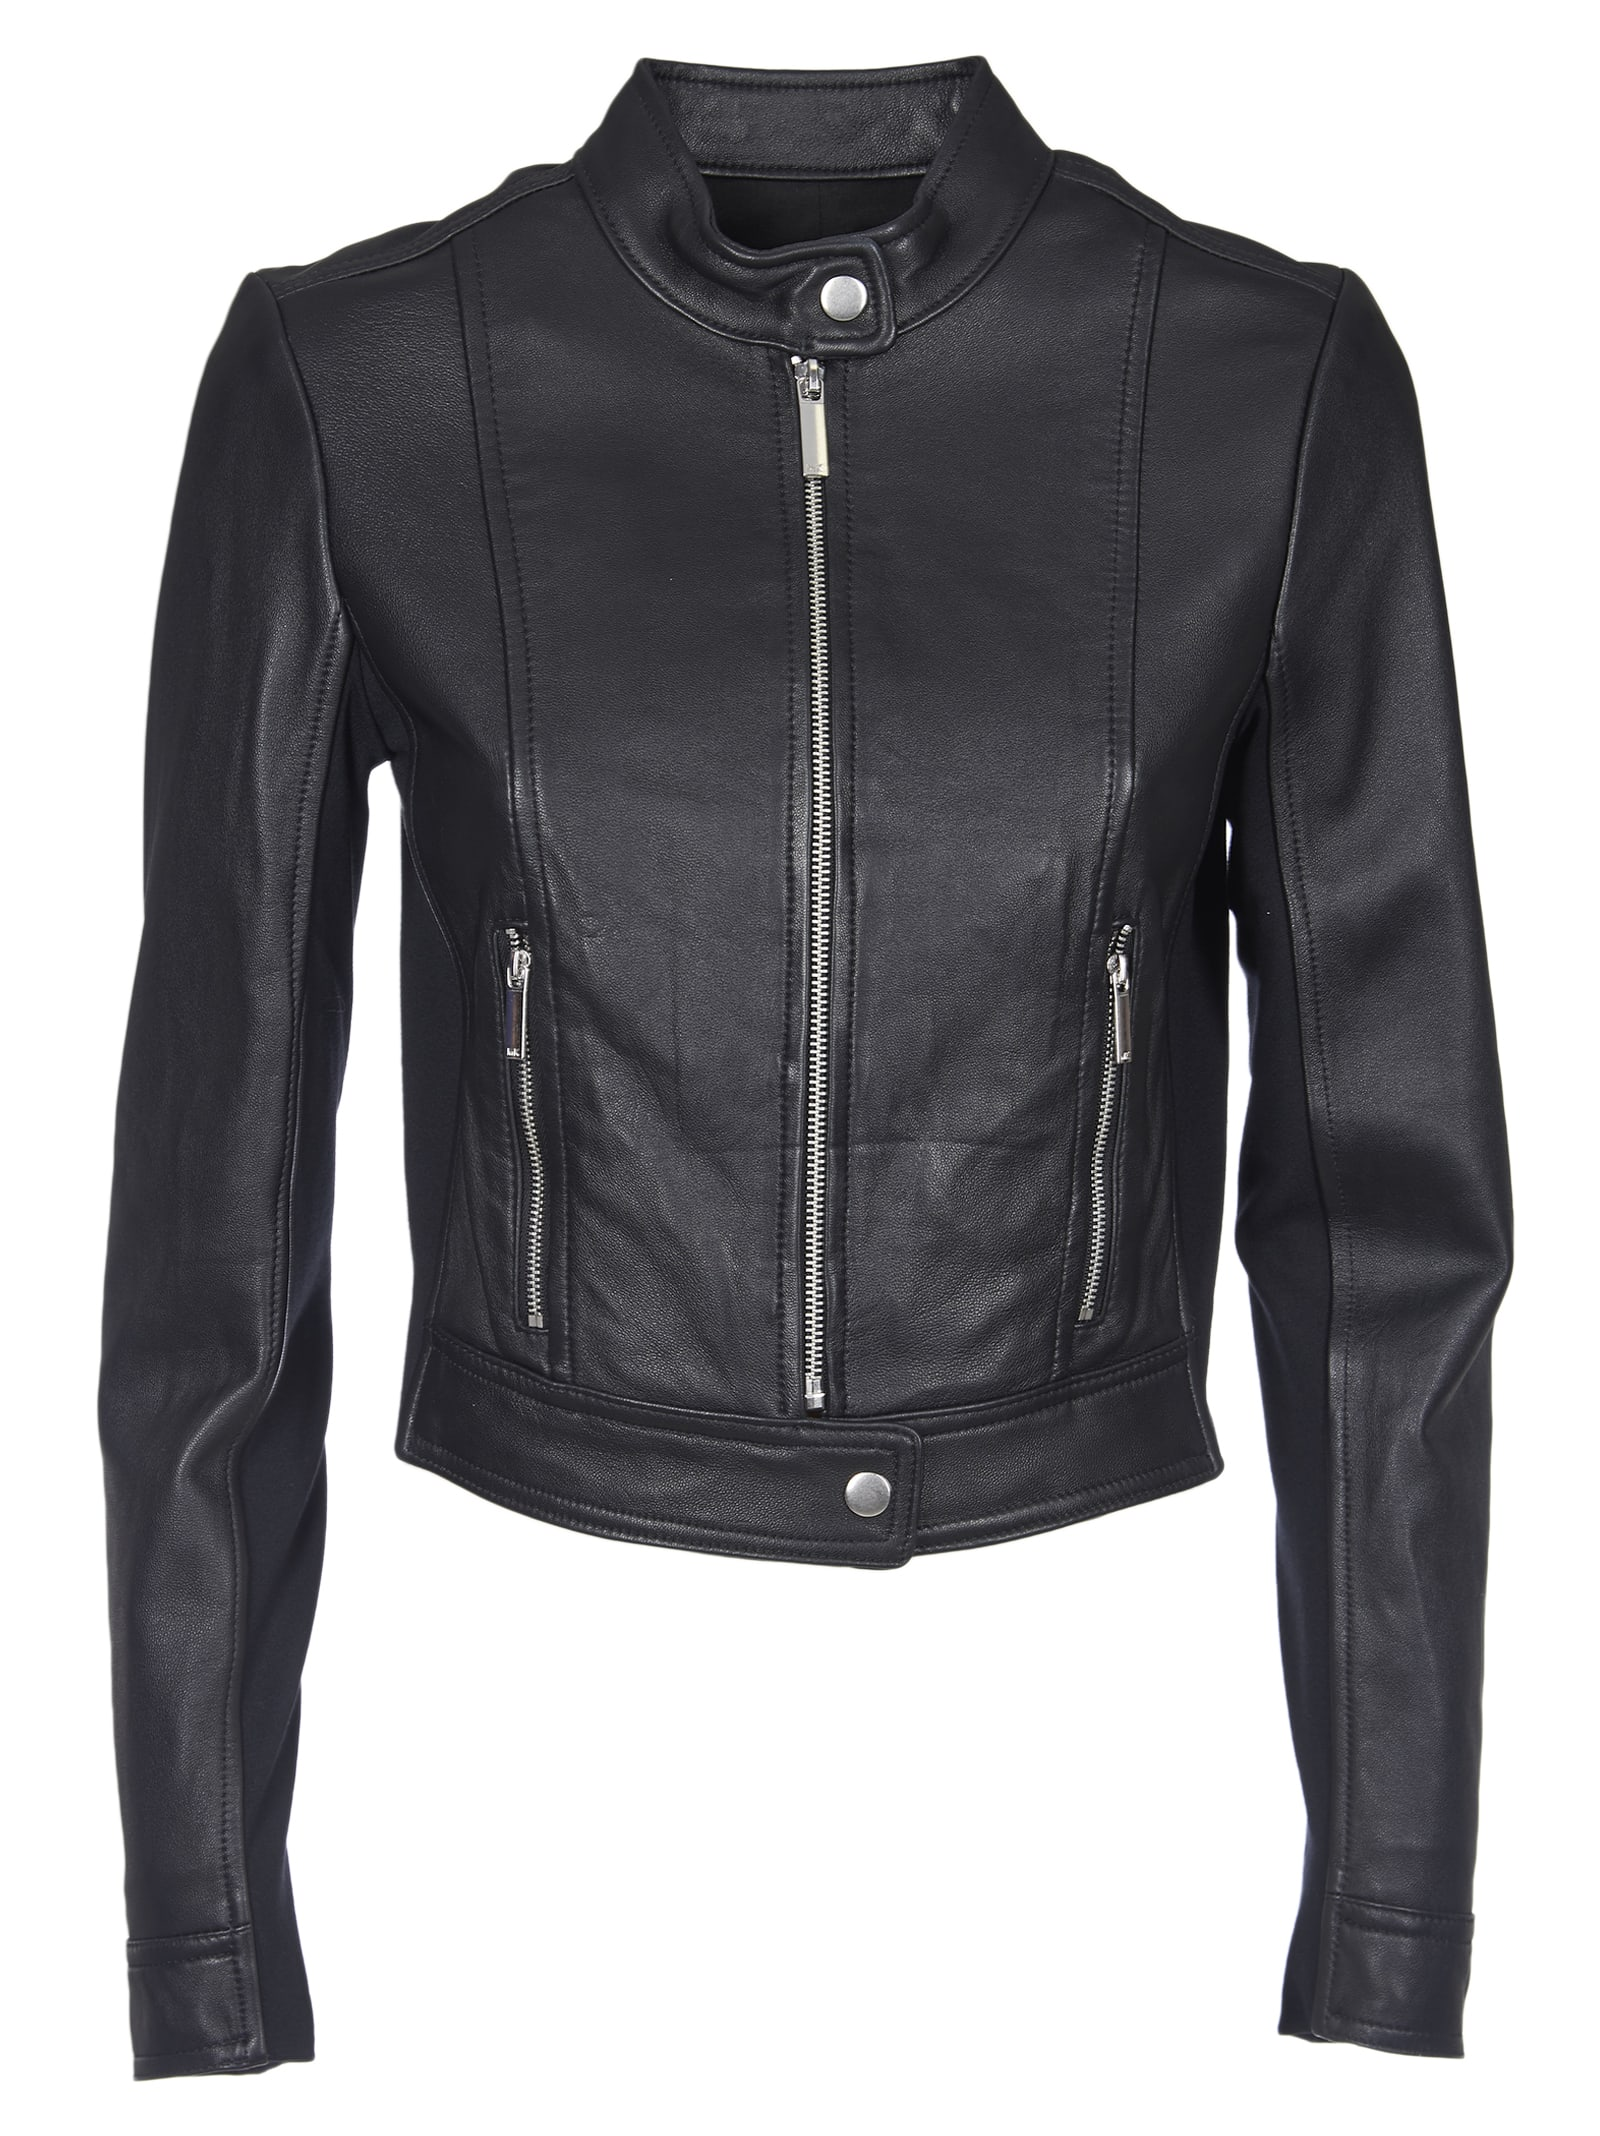 Michael Kors Black Leather Jacket And Fabric Inserts